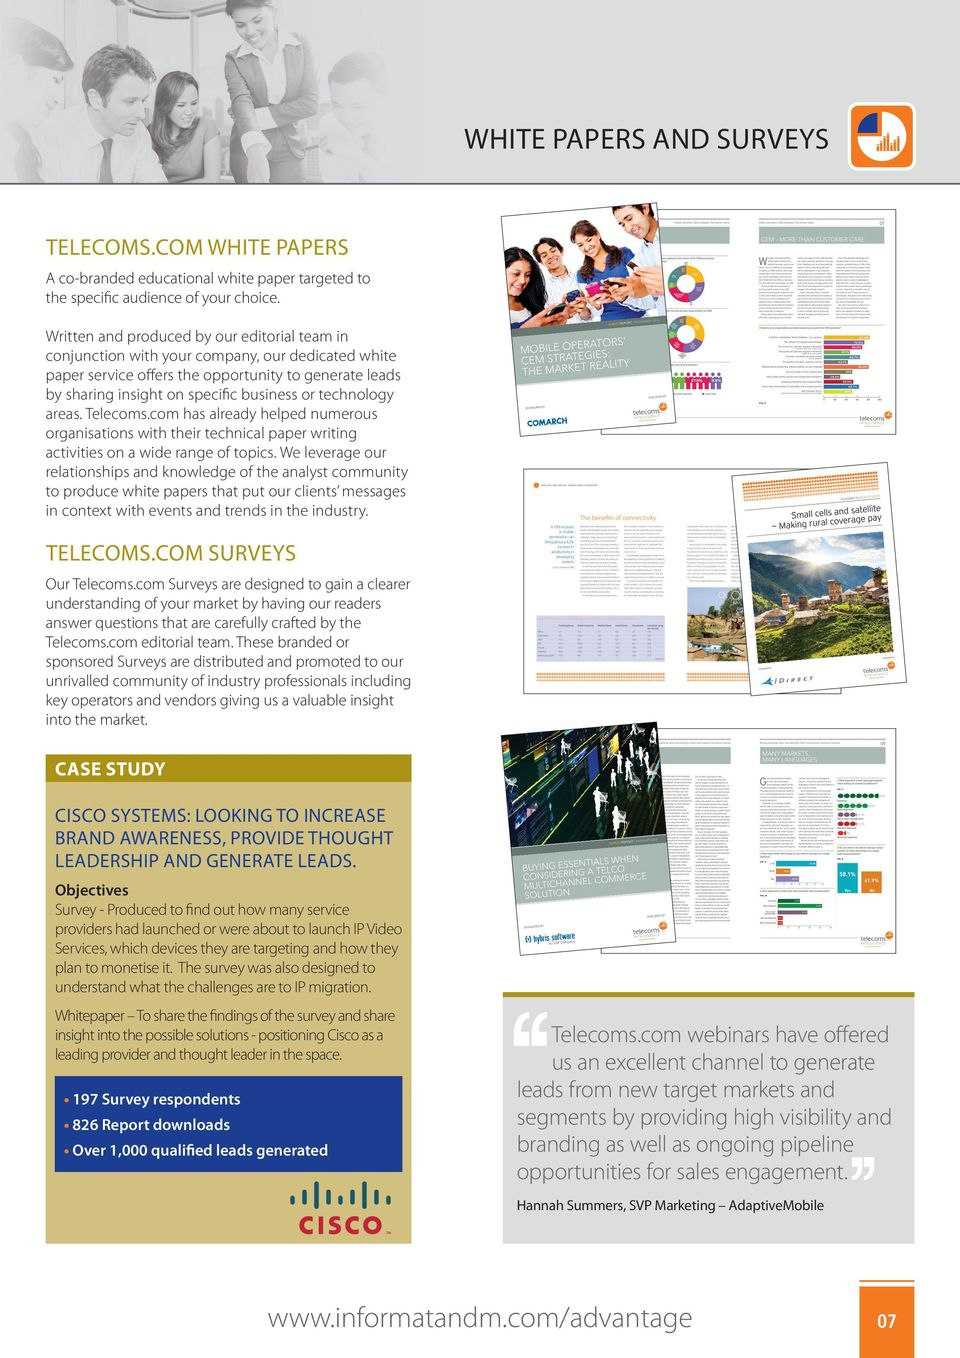 technology areas. Telecoms.com has already helped numerous organisations with their technical paper writing activities on a wide range of topics.